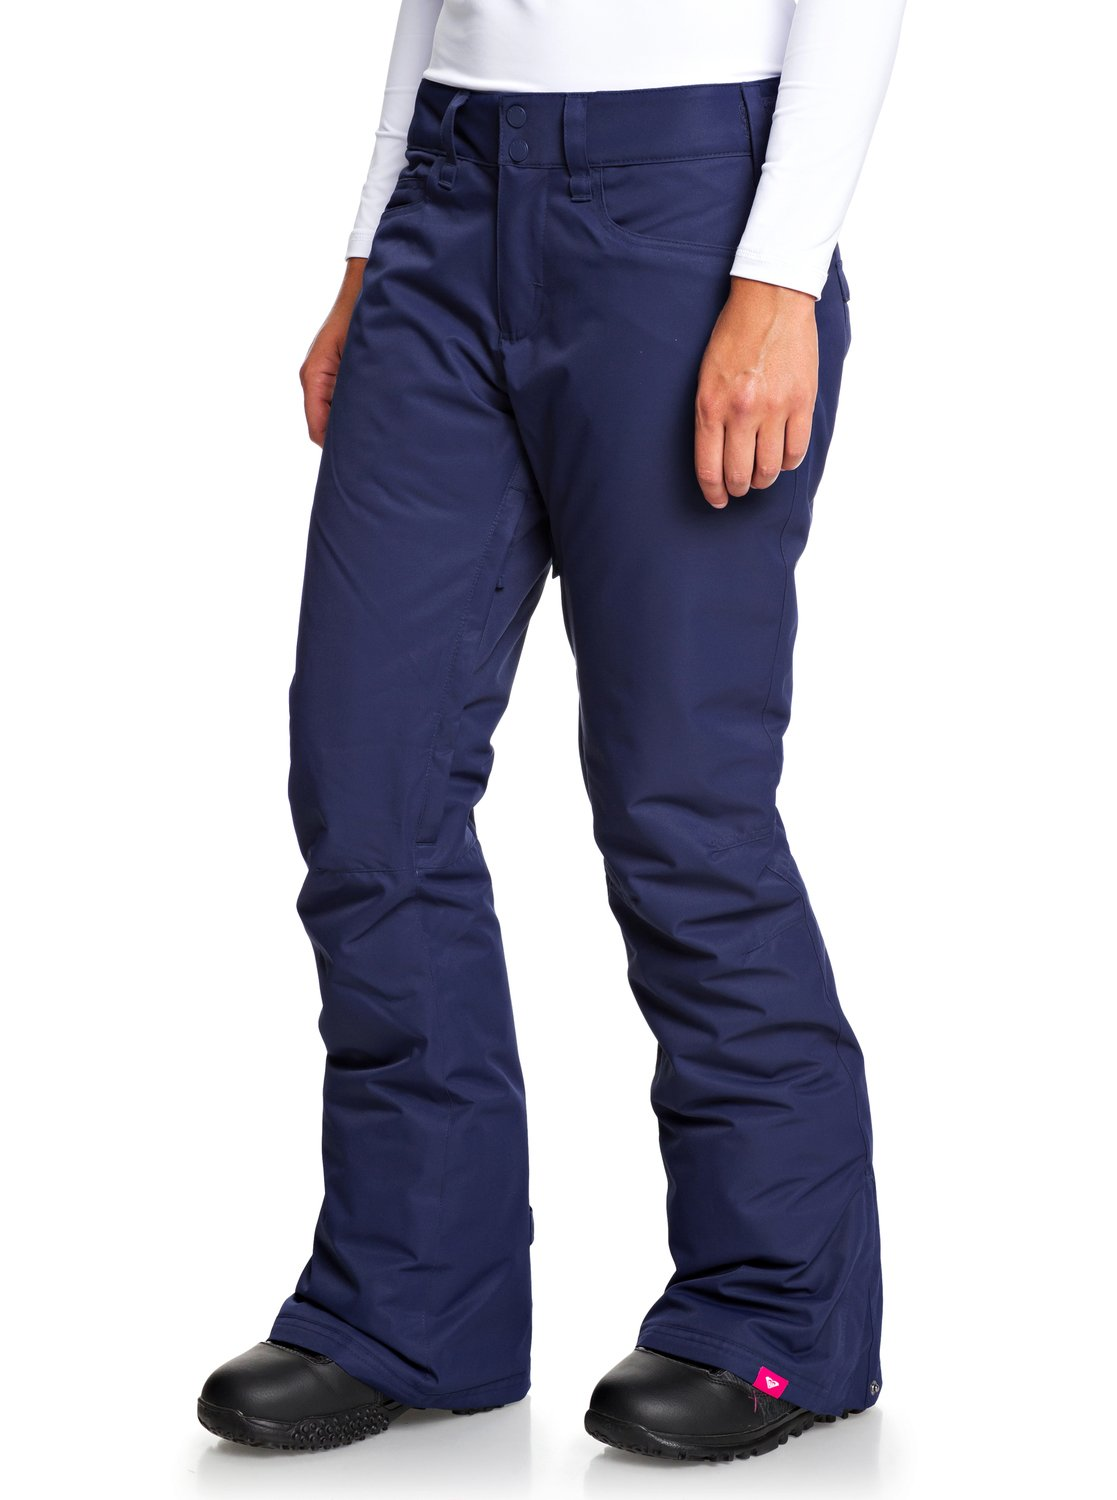 Roxy Backyard Discounted Women's Snow Pants - 88 Gear